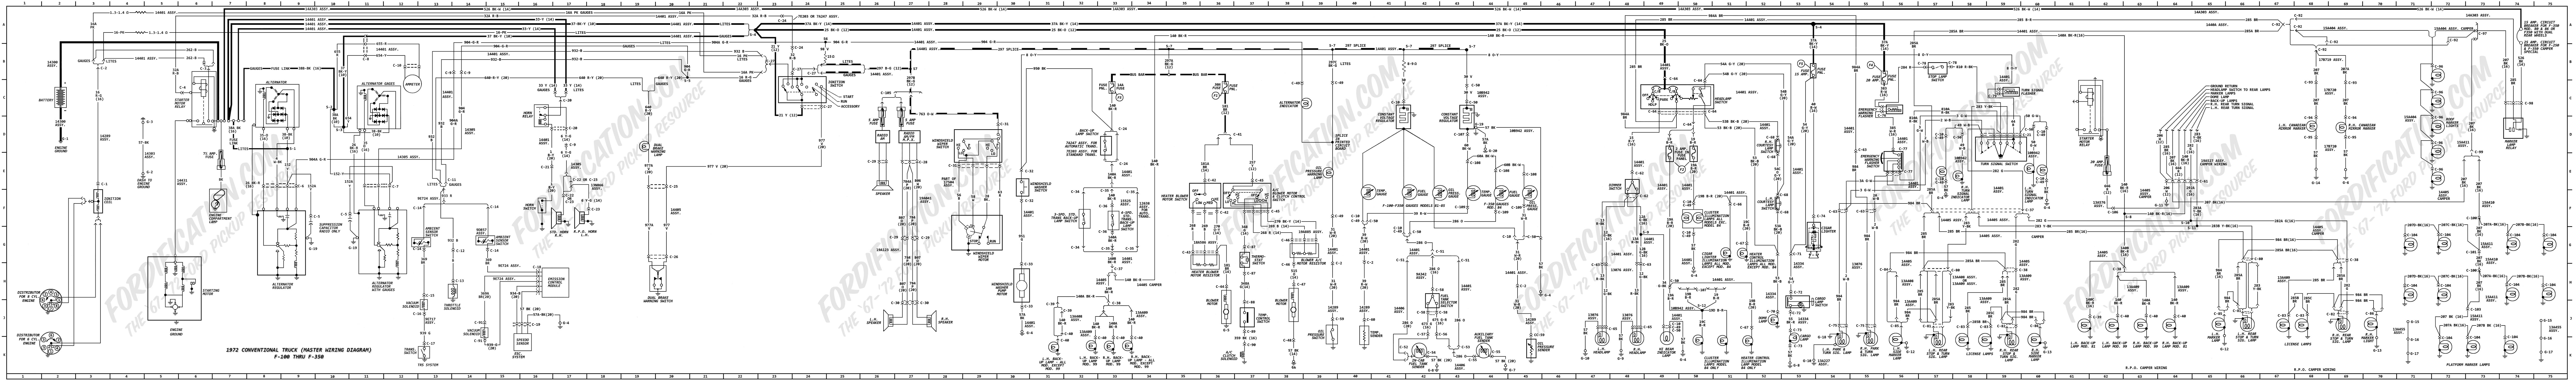 1972 Ford Truck Wiring Diagrams - FORDification.com Ford F Wiring Schematic Fuel on ford super duty wiring schematic, ford f53 wiring schematic, ford f-350 regular cab, ford f-series dually diesel, ford escape wiring schematic, ford ranger wiring schematic, ford f-350 pickup, ford f150 wiring schematic, ford 7 pin plug schematic, ford f800 wiring schematic, 2001 ford wiring schematic, ford f550 wiring schematic, ford radio wiring schematic, ford flex wiring schematic, ford f-350 lifted trucks, ford e-450 wiring schematic, ford f250 wiring schematic, ford expedition wiring schematic, ford e-350 van wiring schematic, ford excursion wiring schematic,